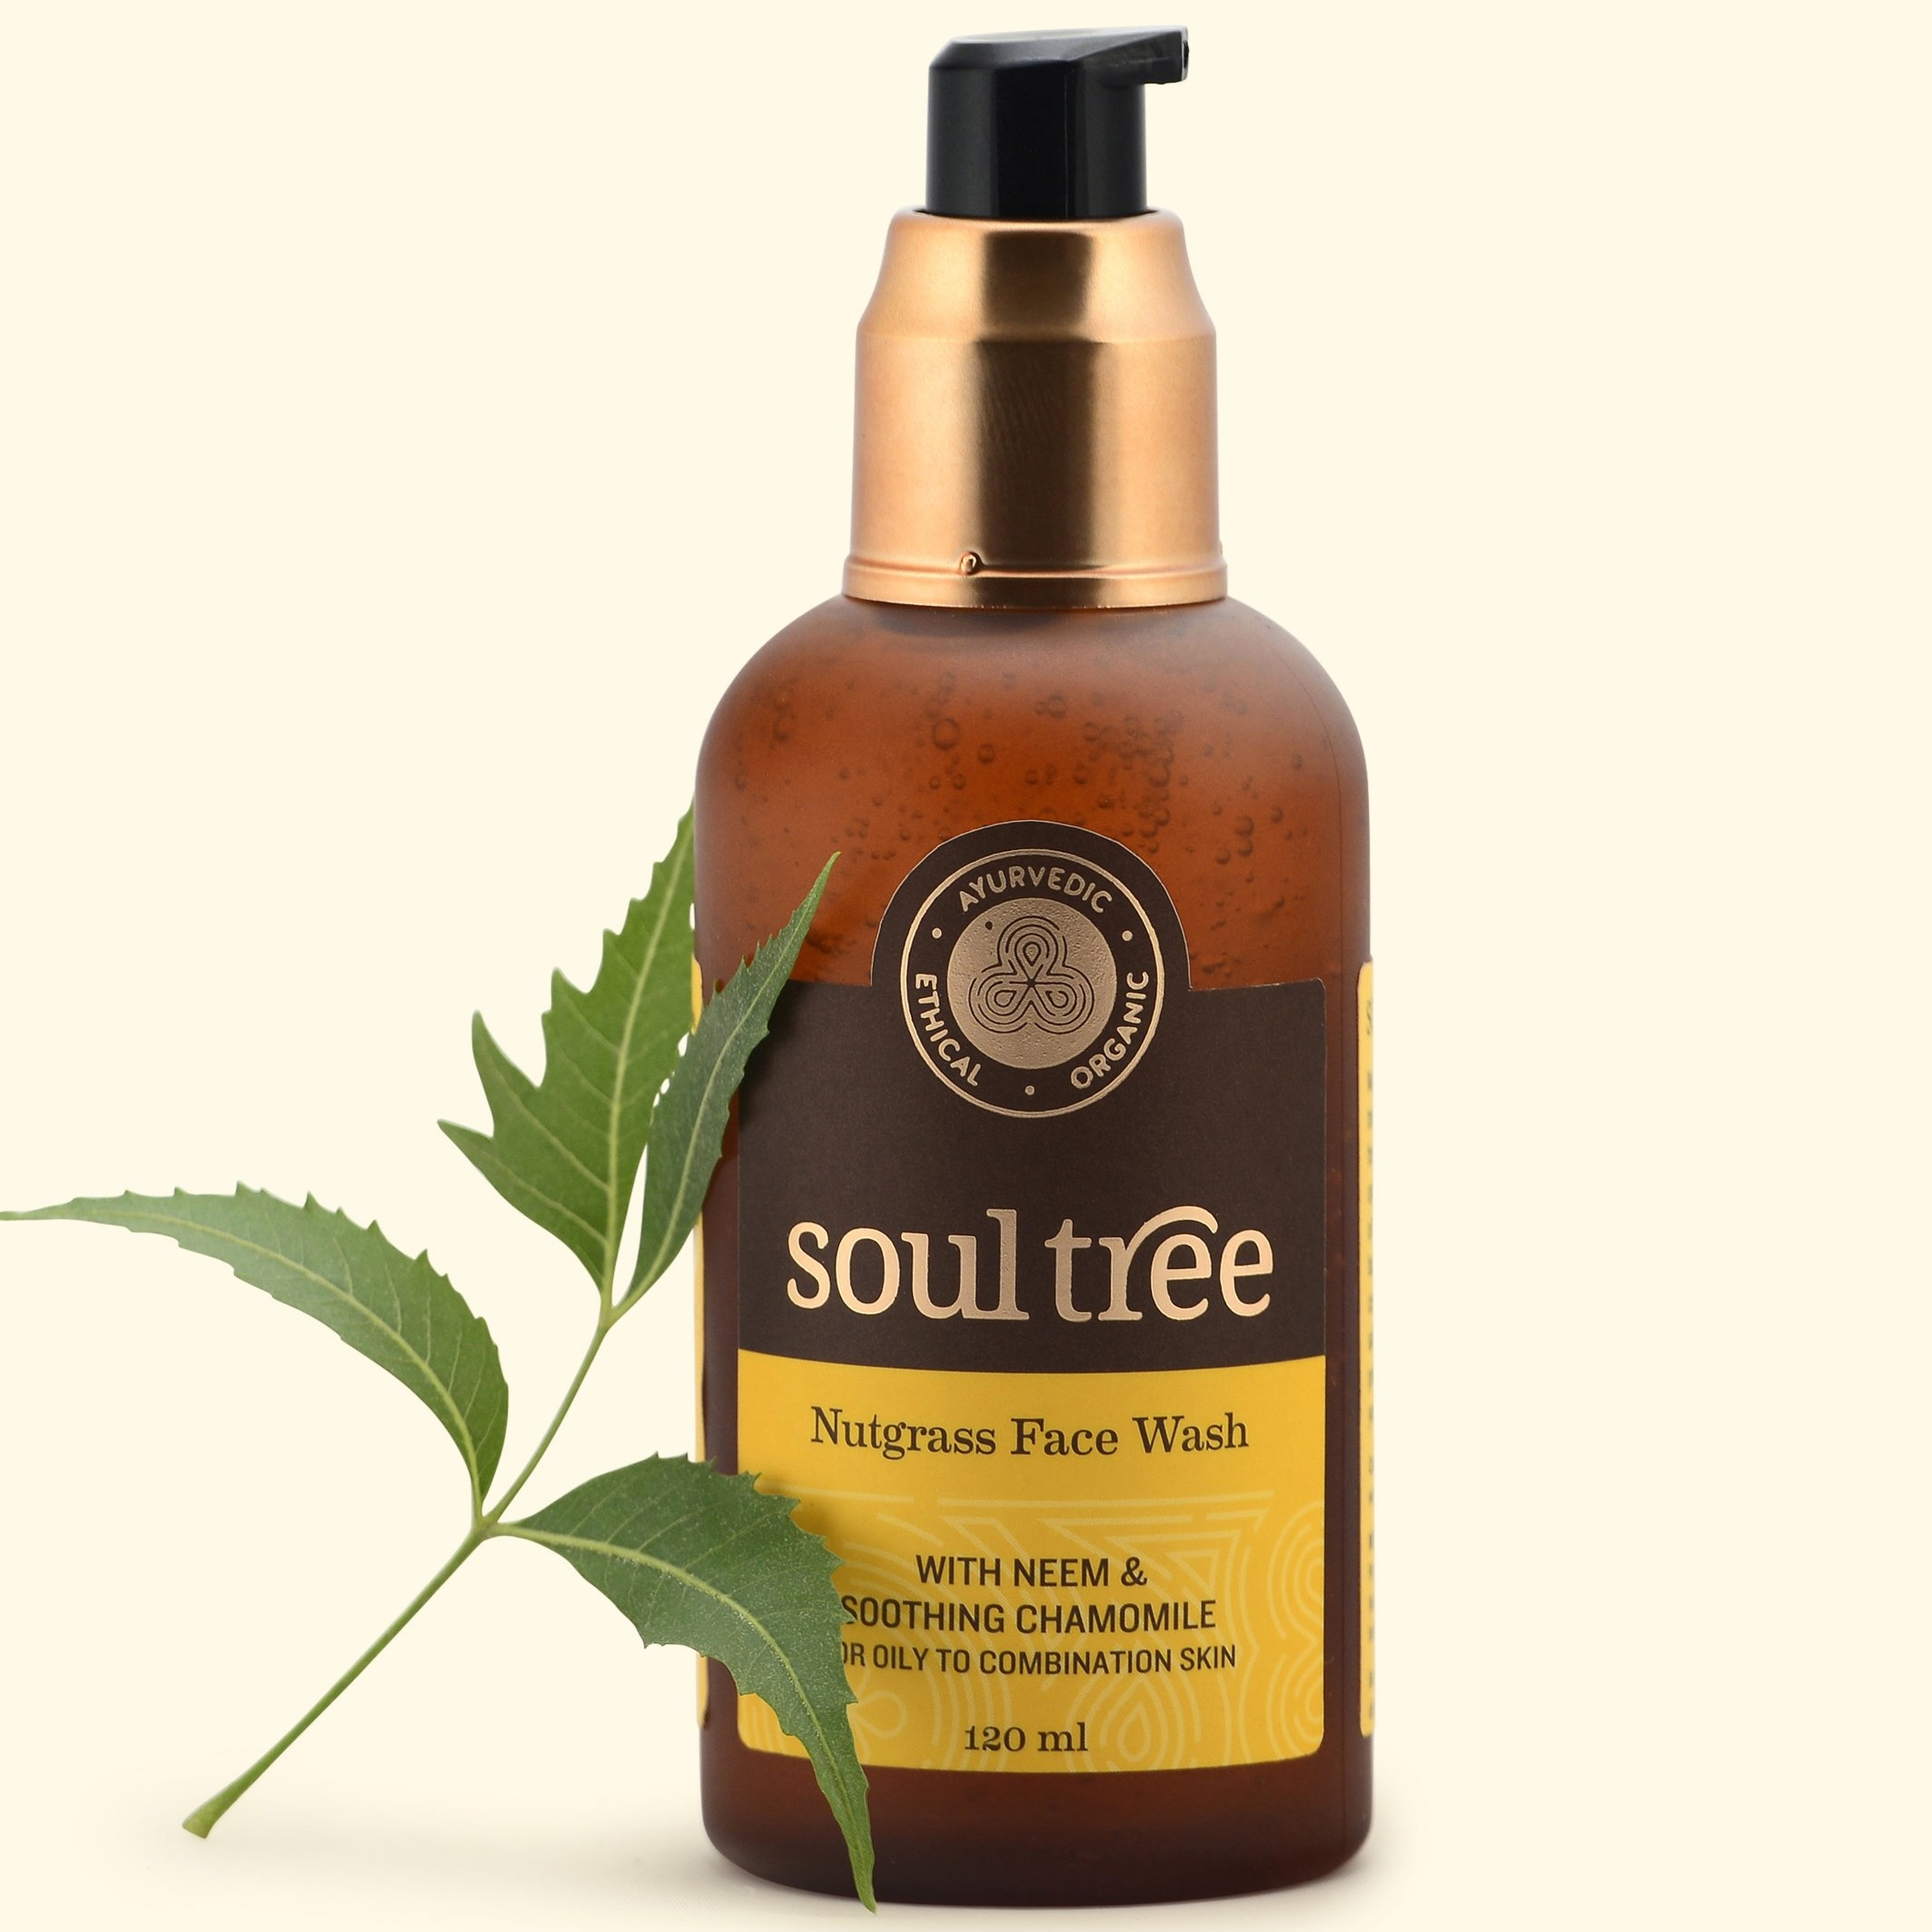 Soultree Nutgrass Face Wash 120 ml